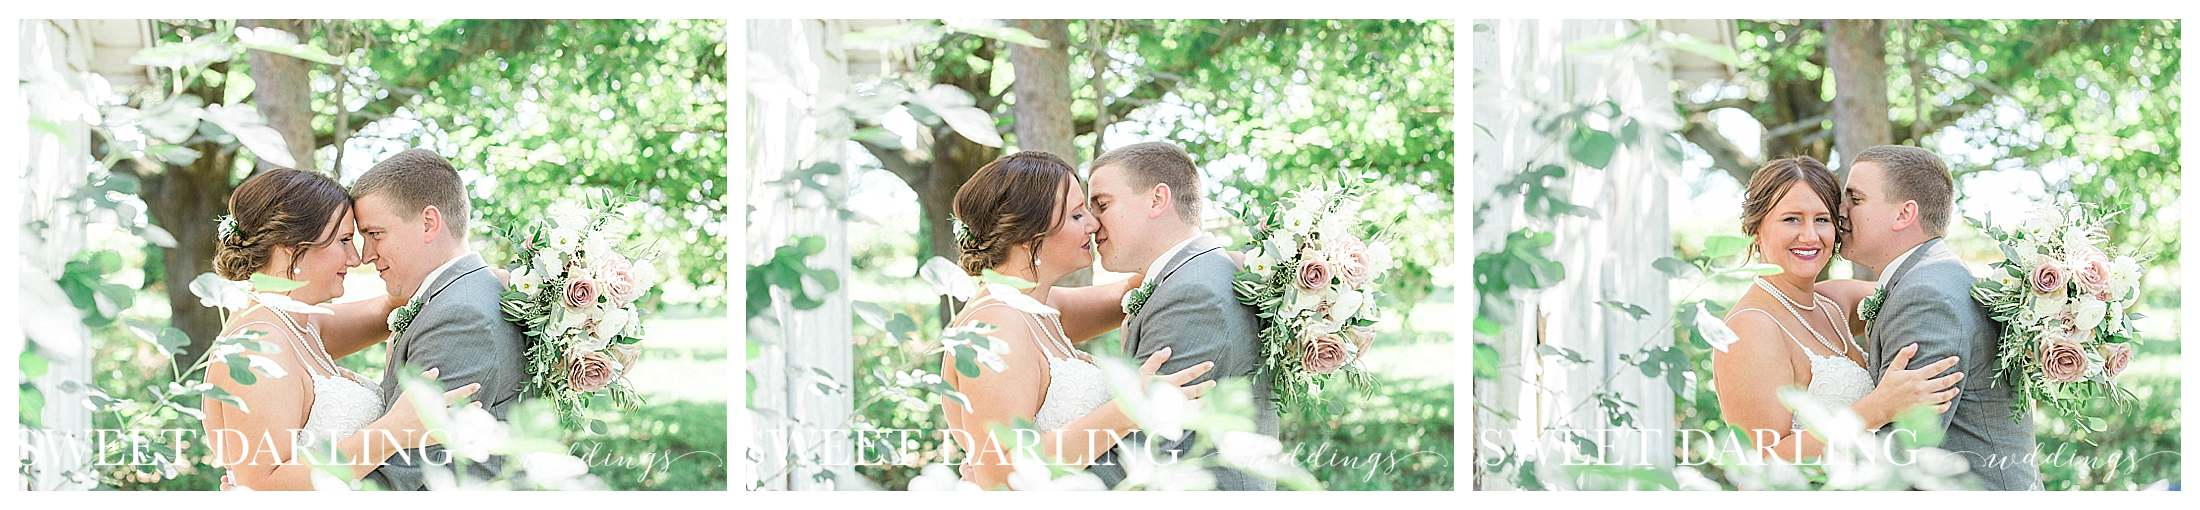 Close-up of bride and groom with trees